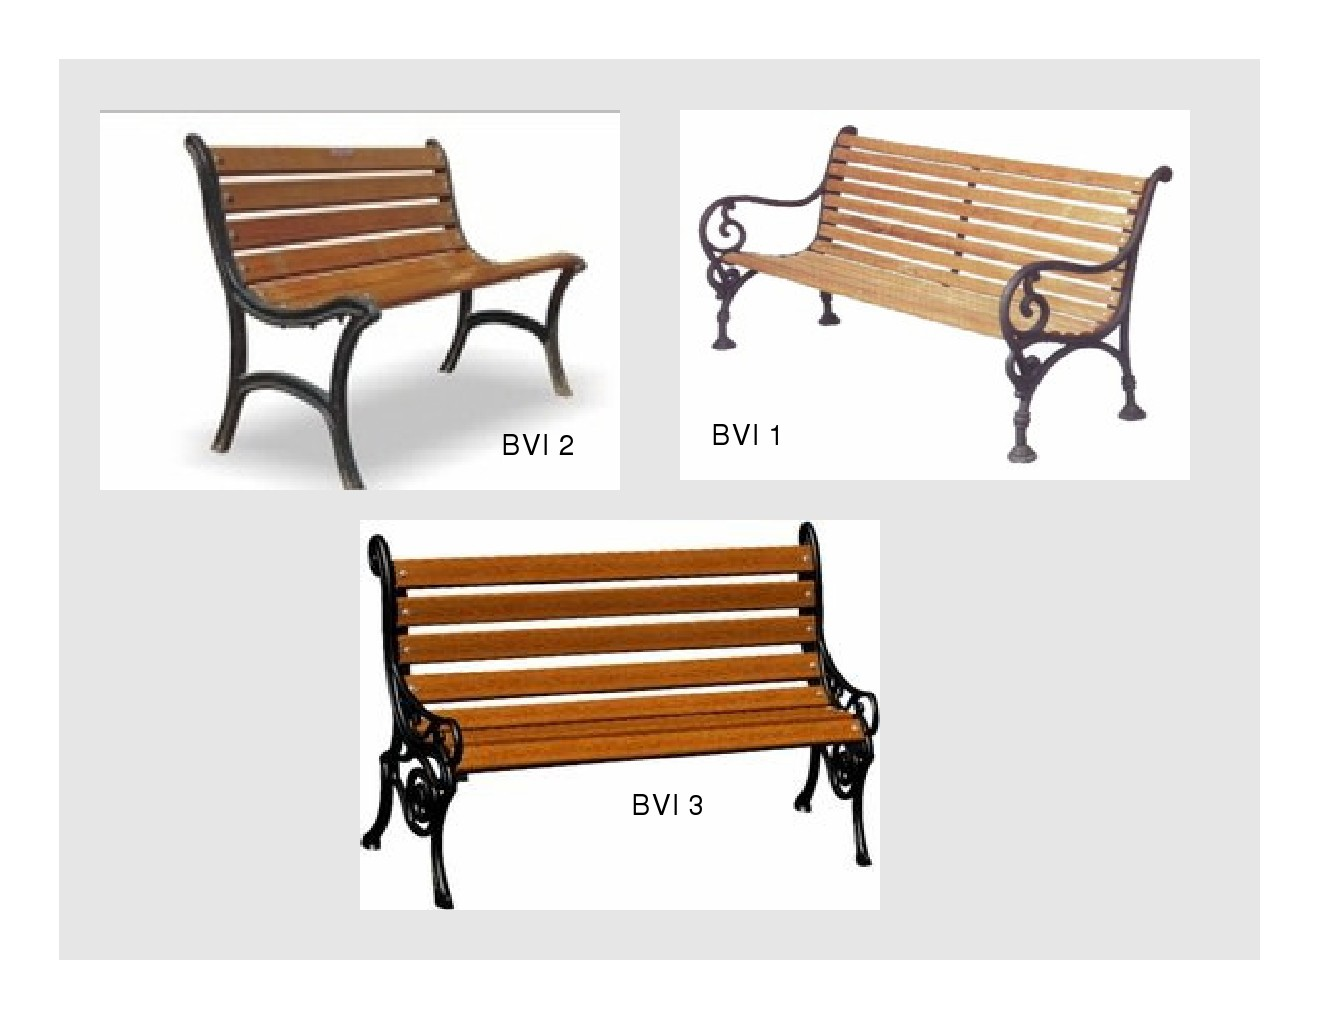 VICTORIAN BENCHES/ CLASSIC BENCHES